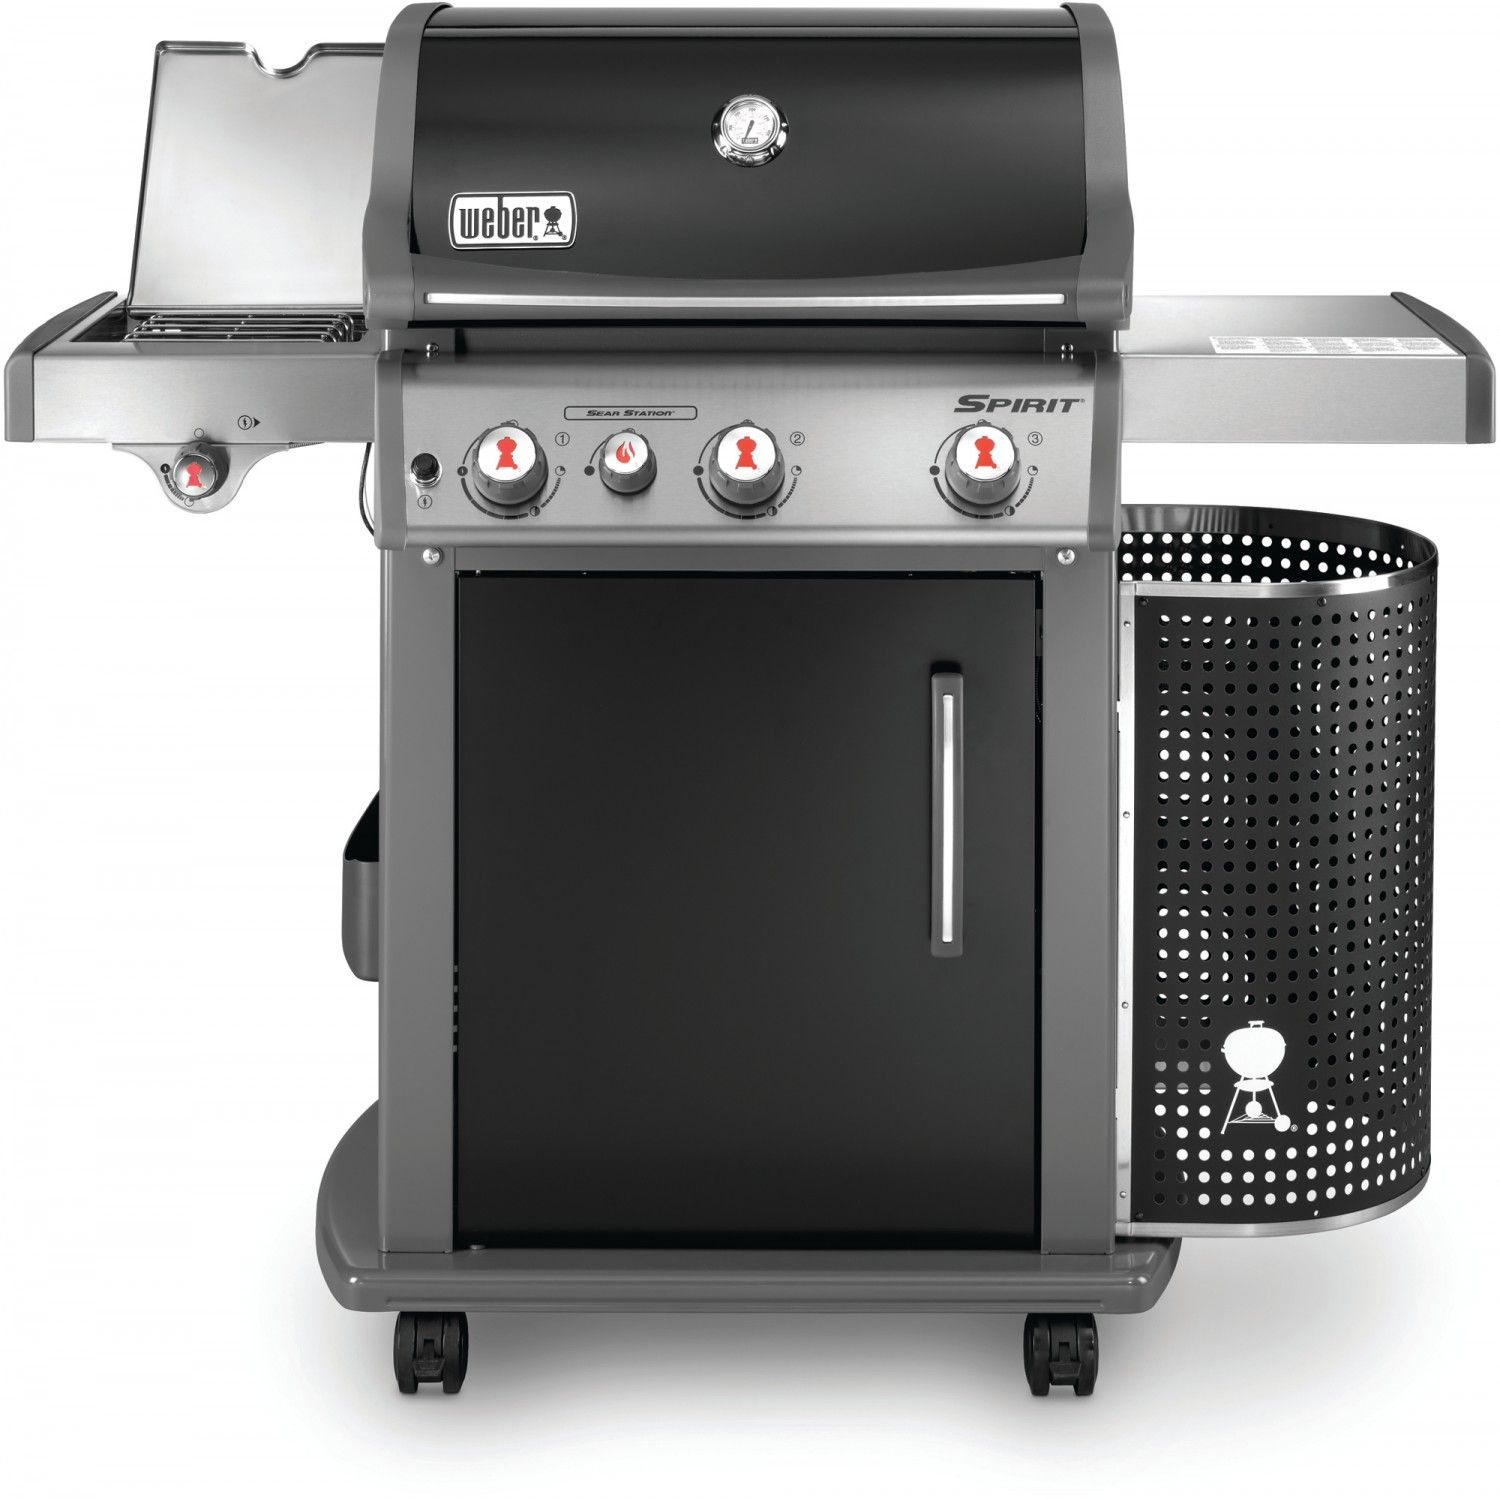 weber spirit premium e-330 gbs bbq | new weber products for 2016